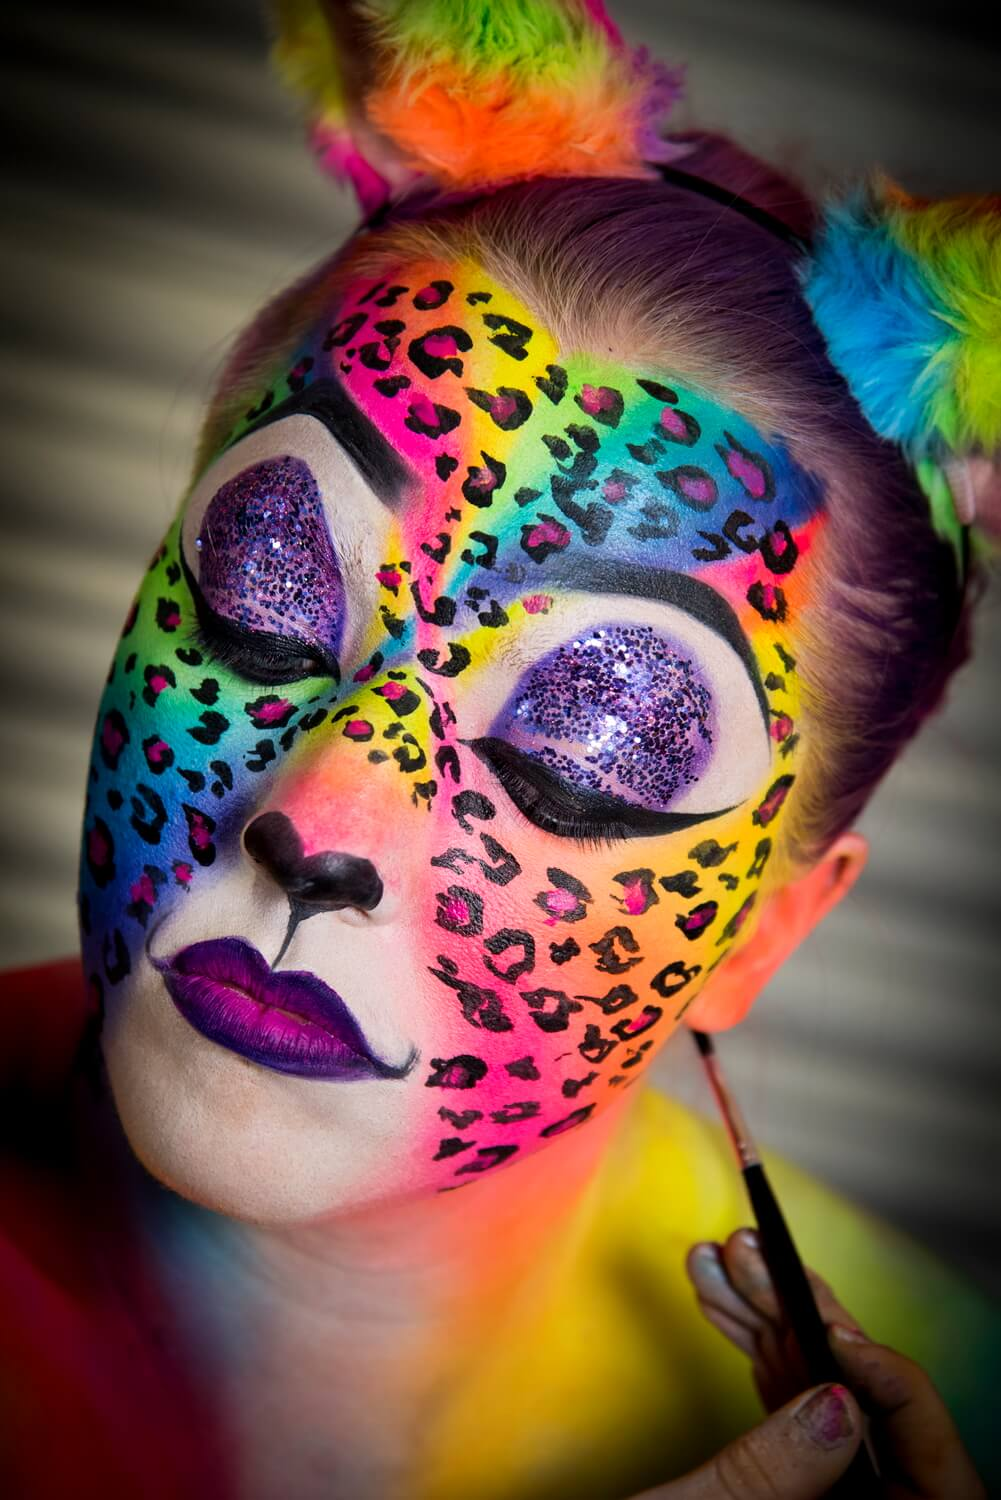 Skilled, talented, imaginative and expert professional photographer, Competitive, creative and transformative photography using make up artists.